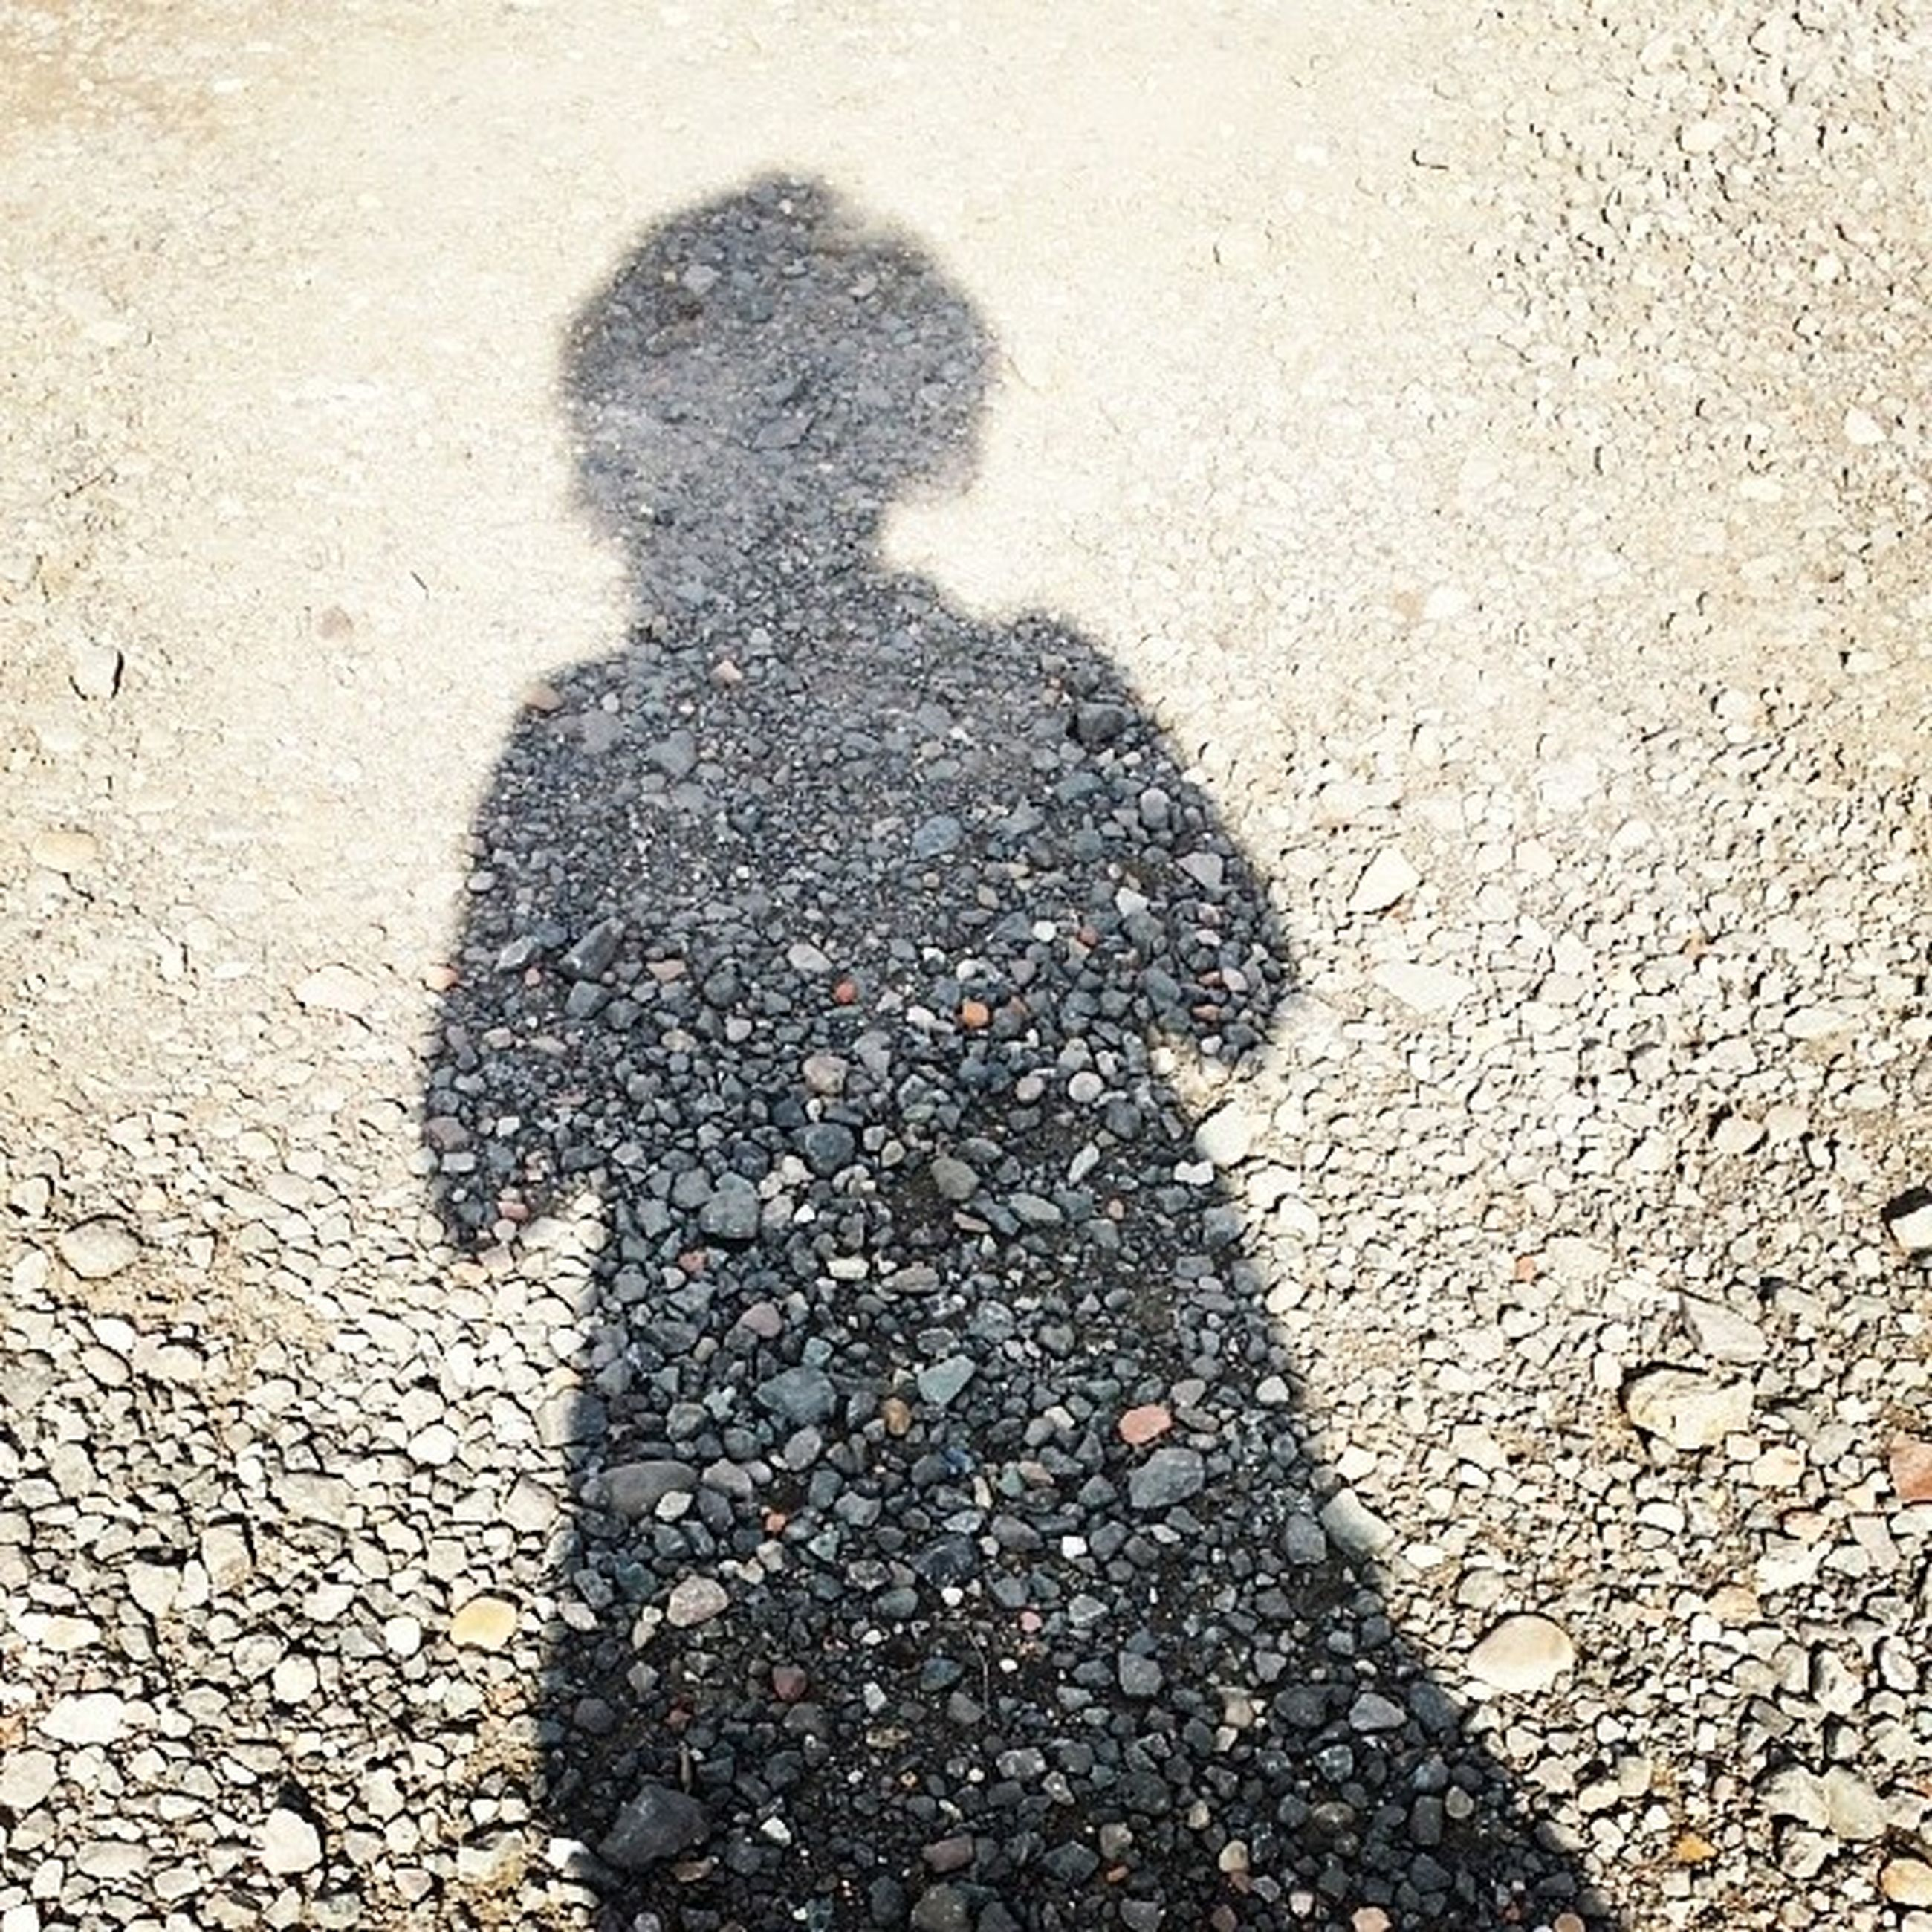 shadow, high angle view, focus on shadow, street, lifestyles, sunlight, leisure activity, unrecognizable person, men, outdoors, standing, day, silhouette, ground, road, asphalt, sidewalk, walking